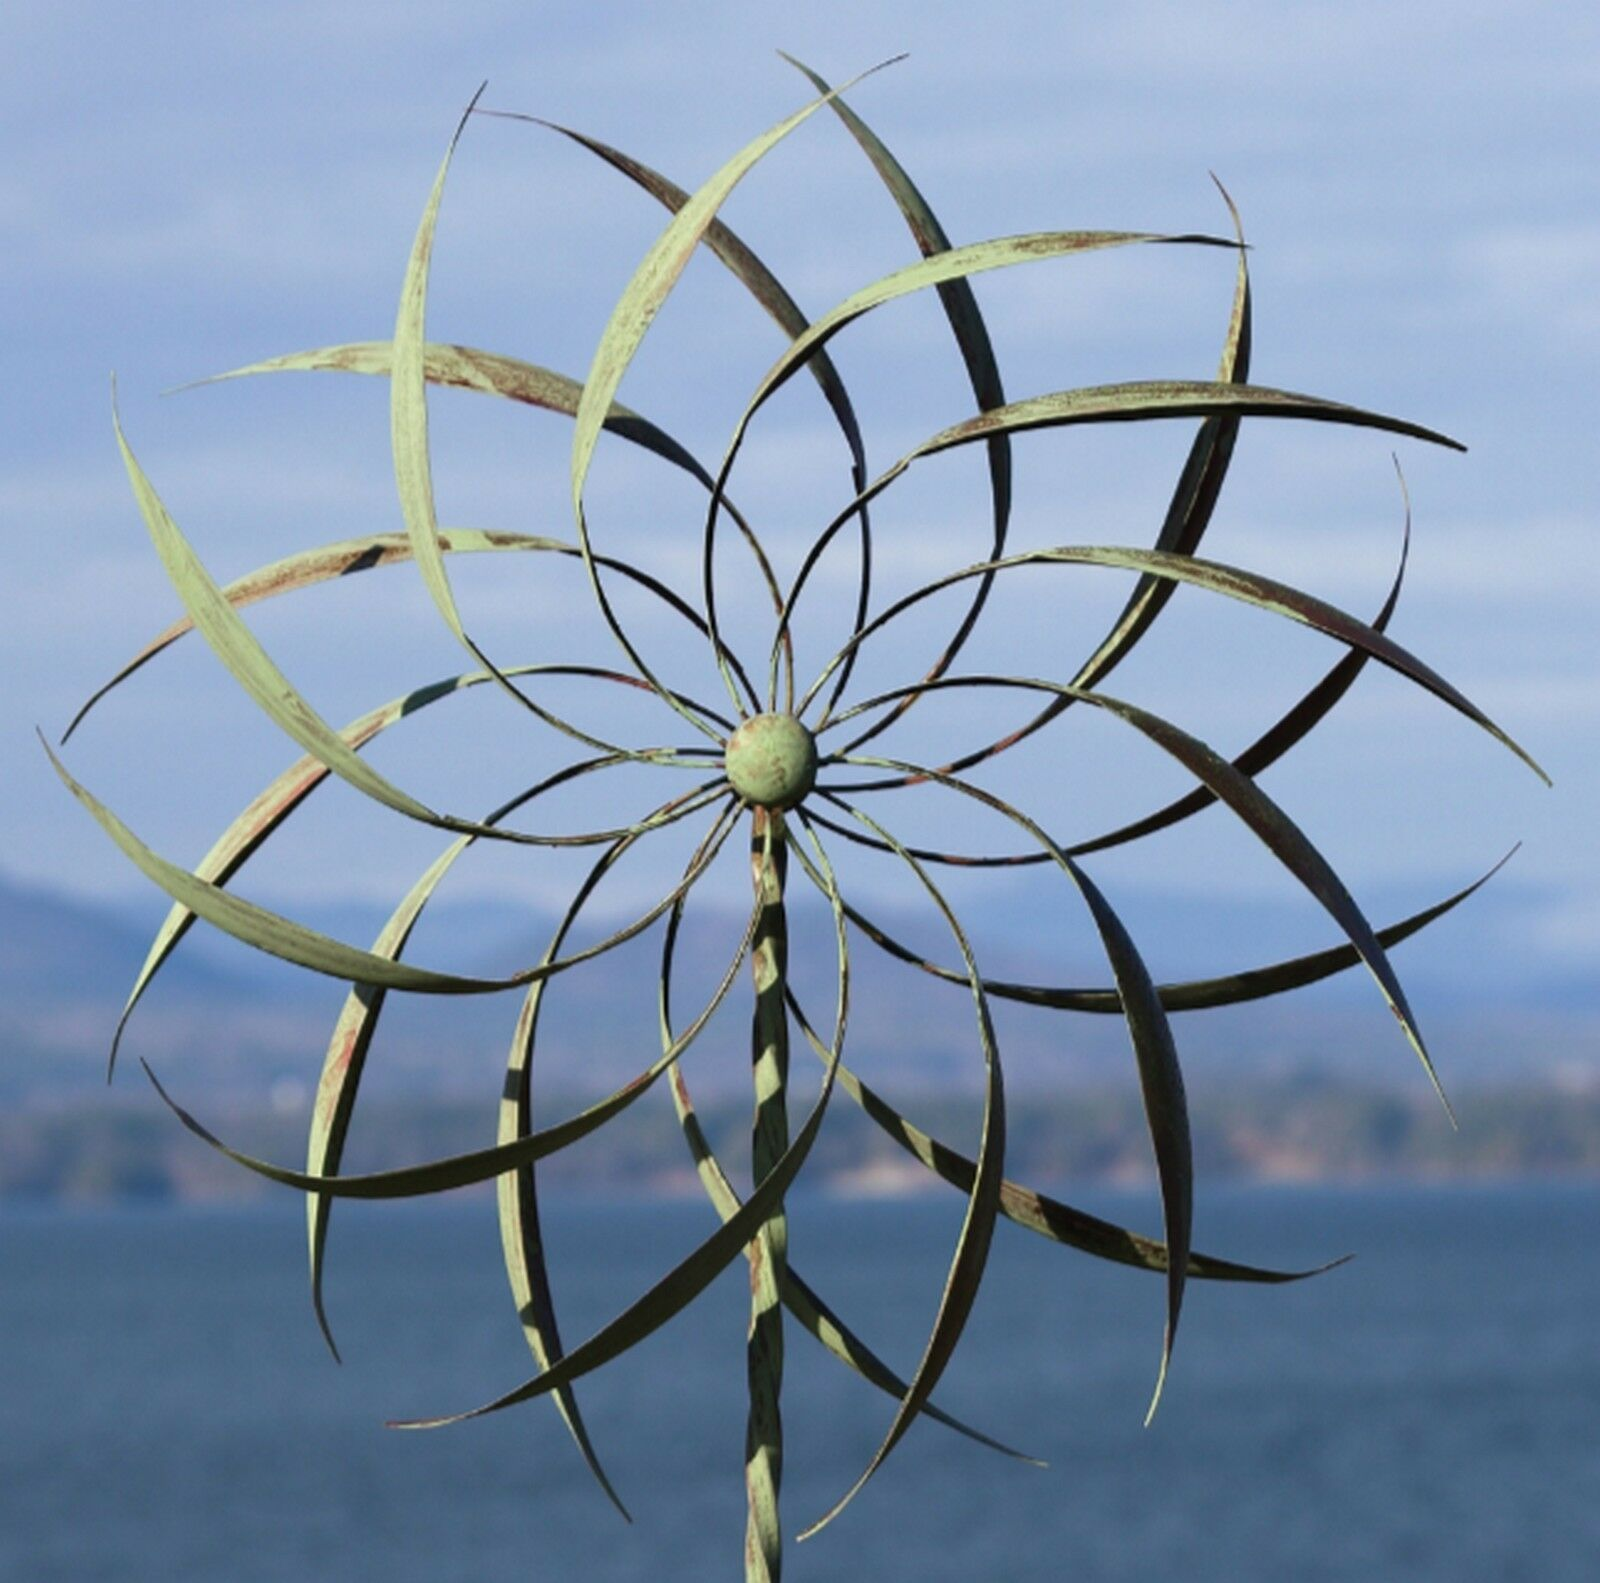 wind spinner - garden spinner wind catcher windmill yard decor